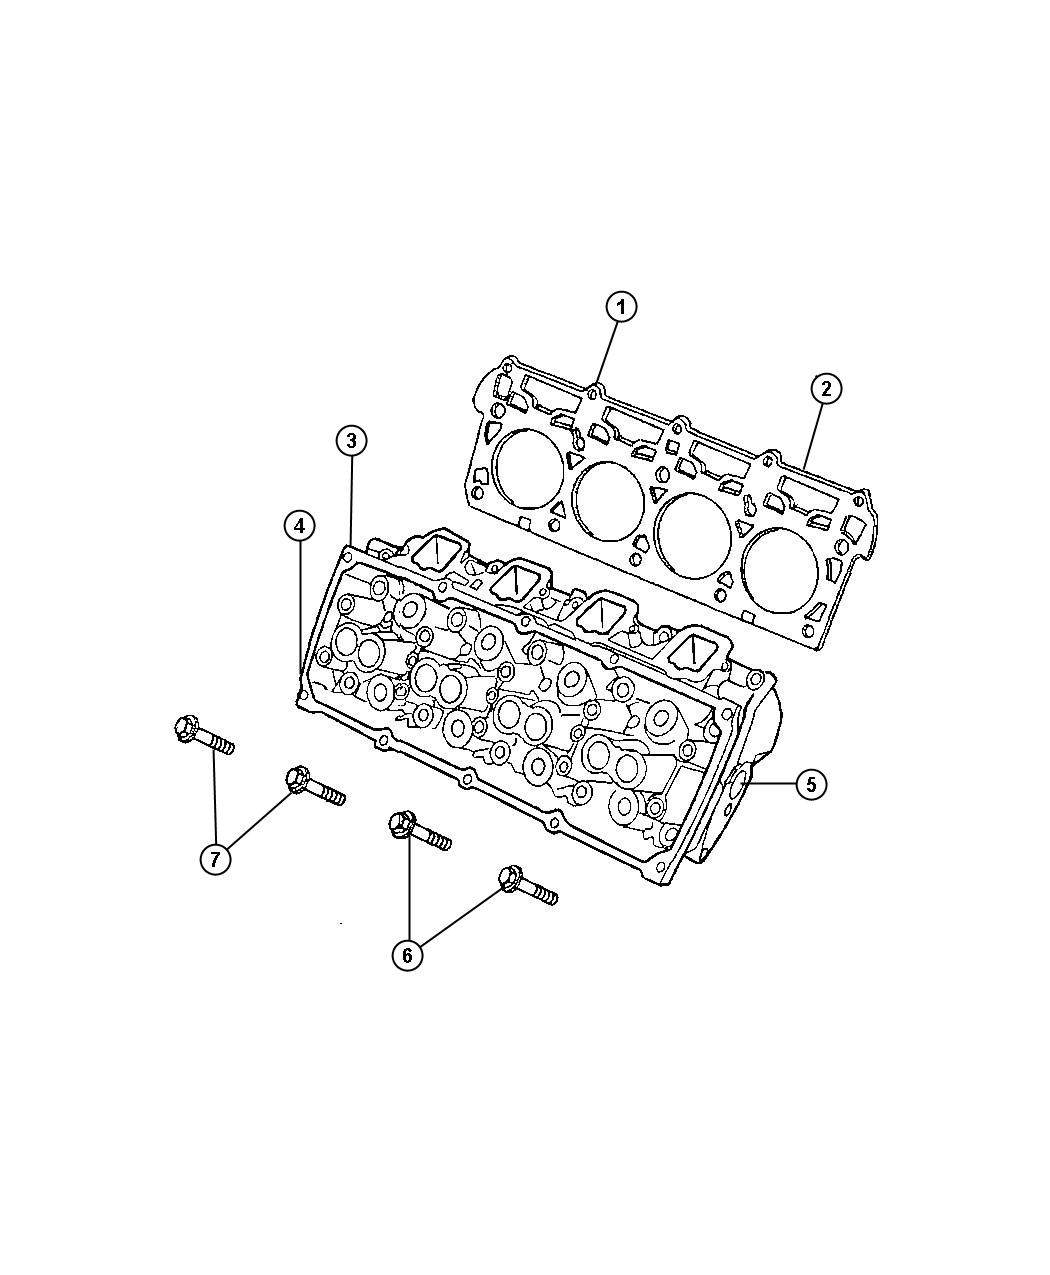 Ram 5 7 Hemi Engine Block Diagram